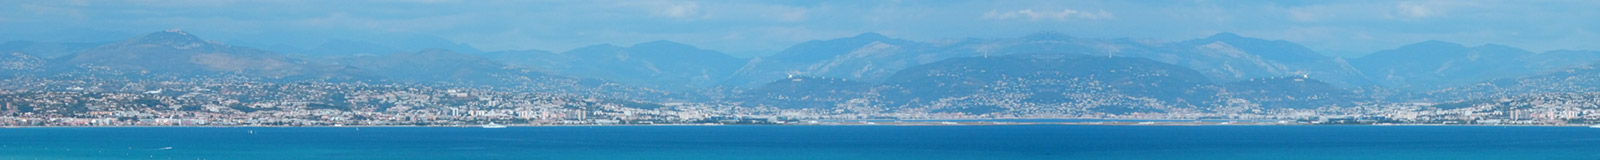 Our apartment has the best view in Antibes